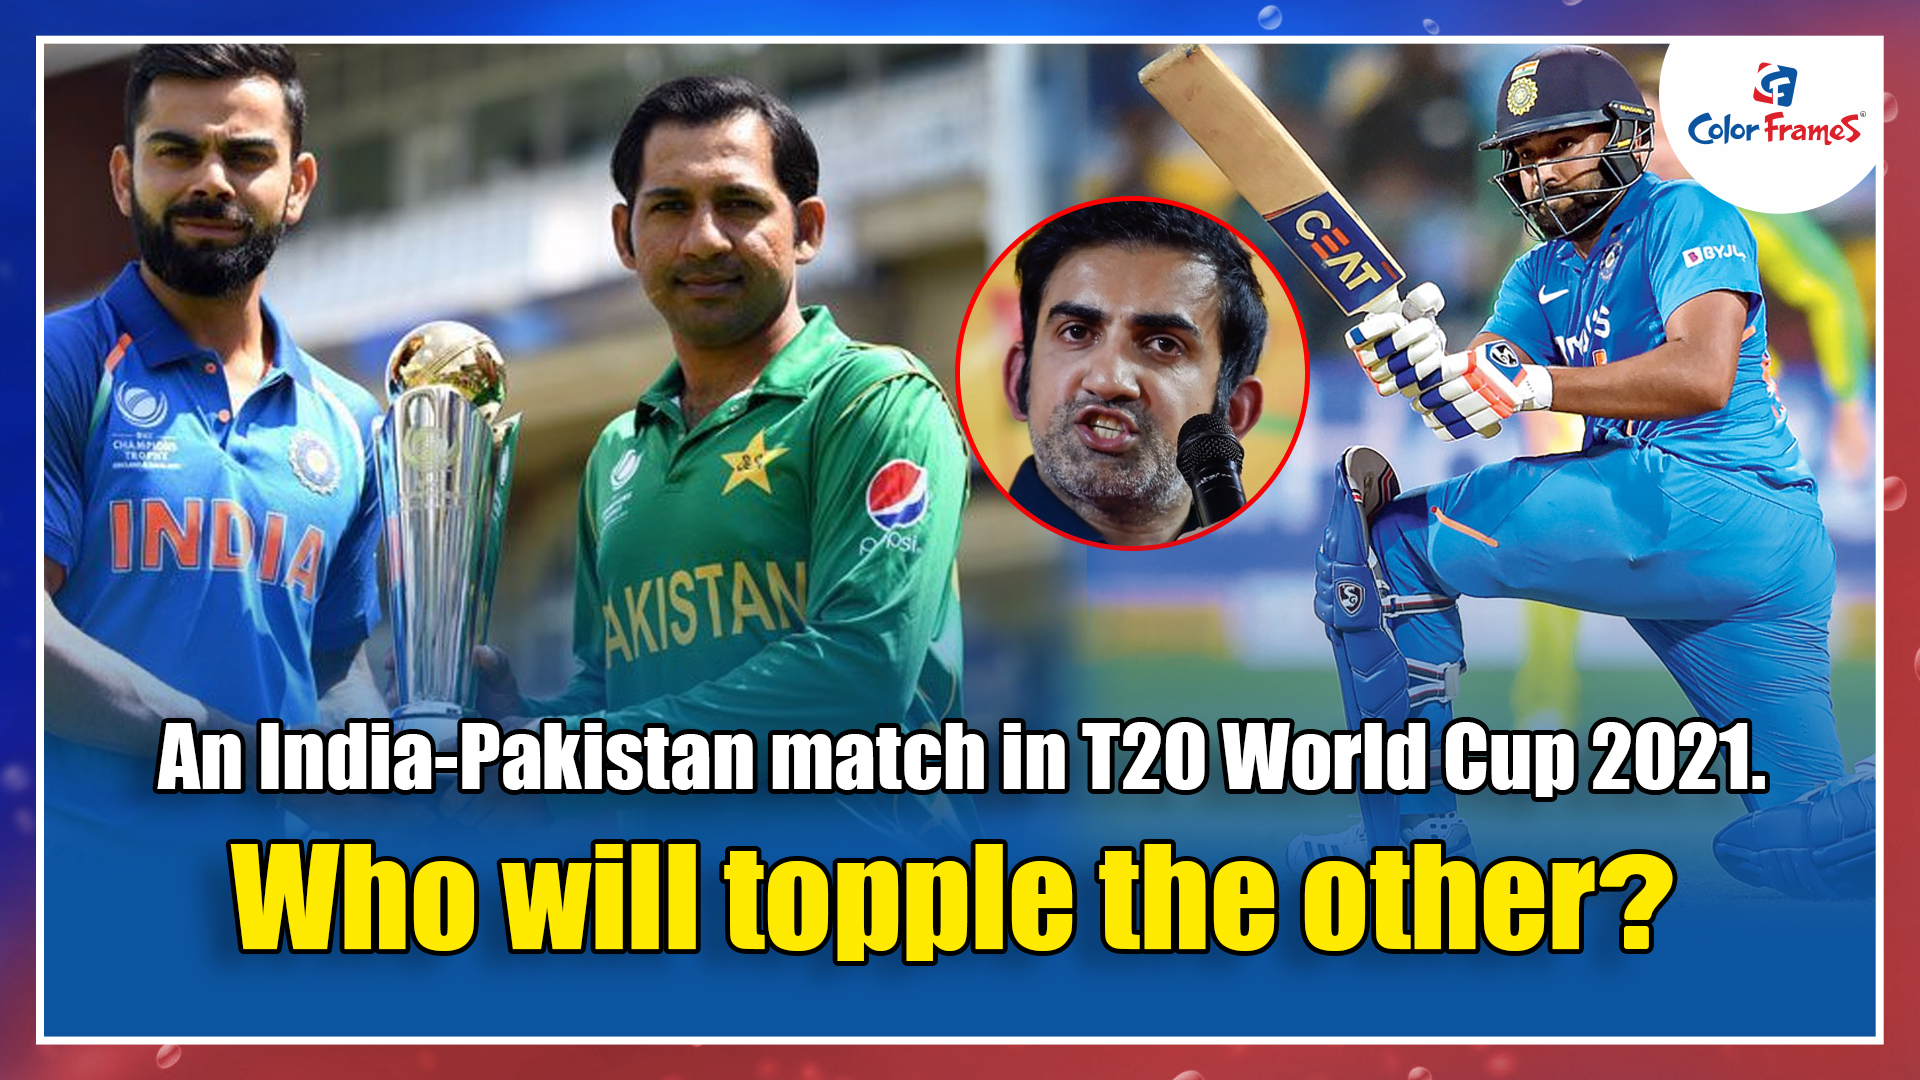 An India-Pakistan match in T20 World Cup 2021. Who will topple the other?